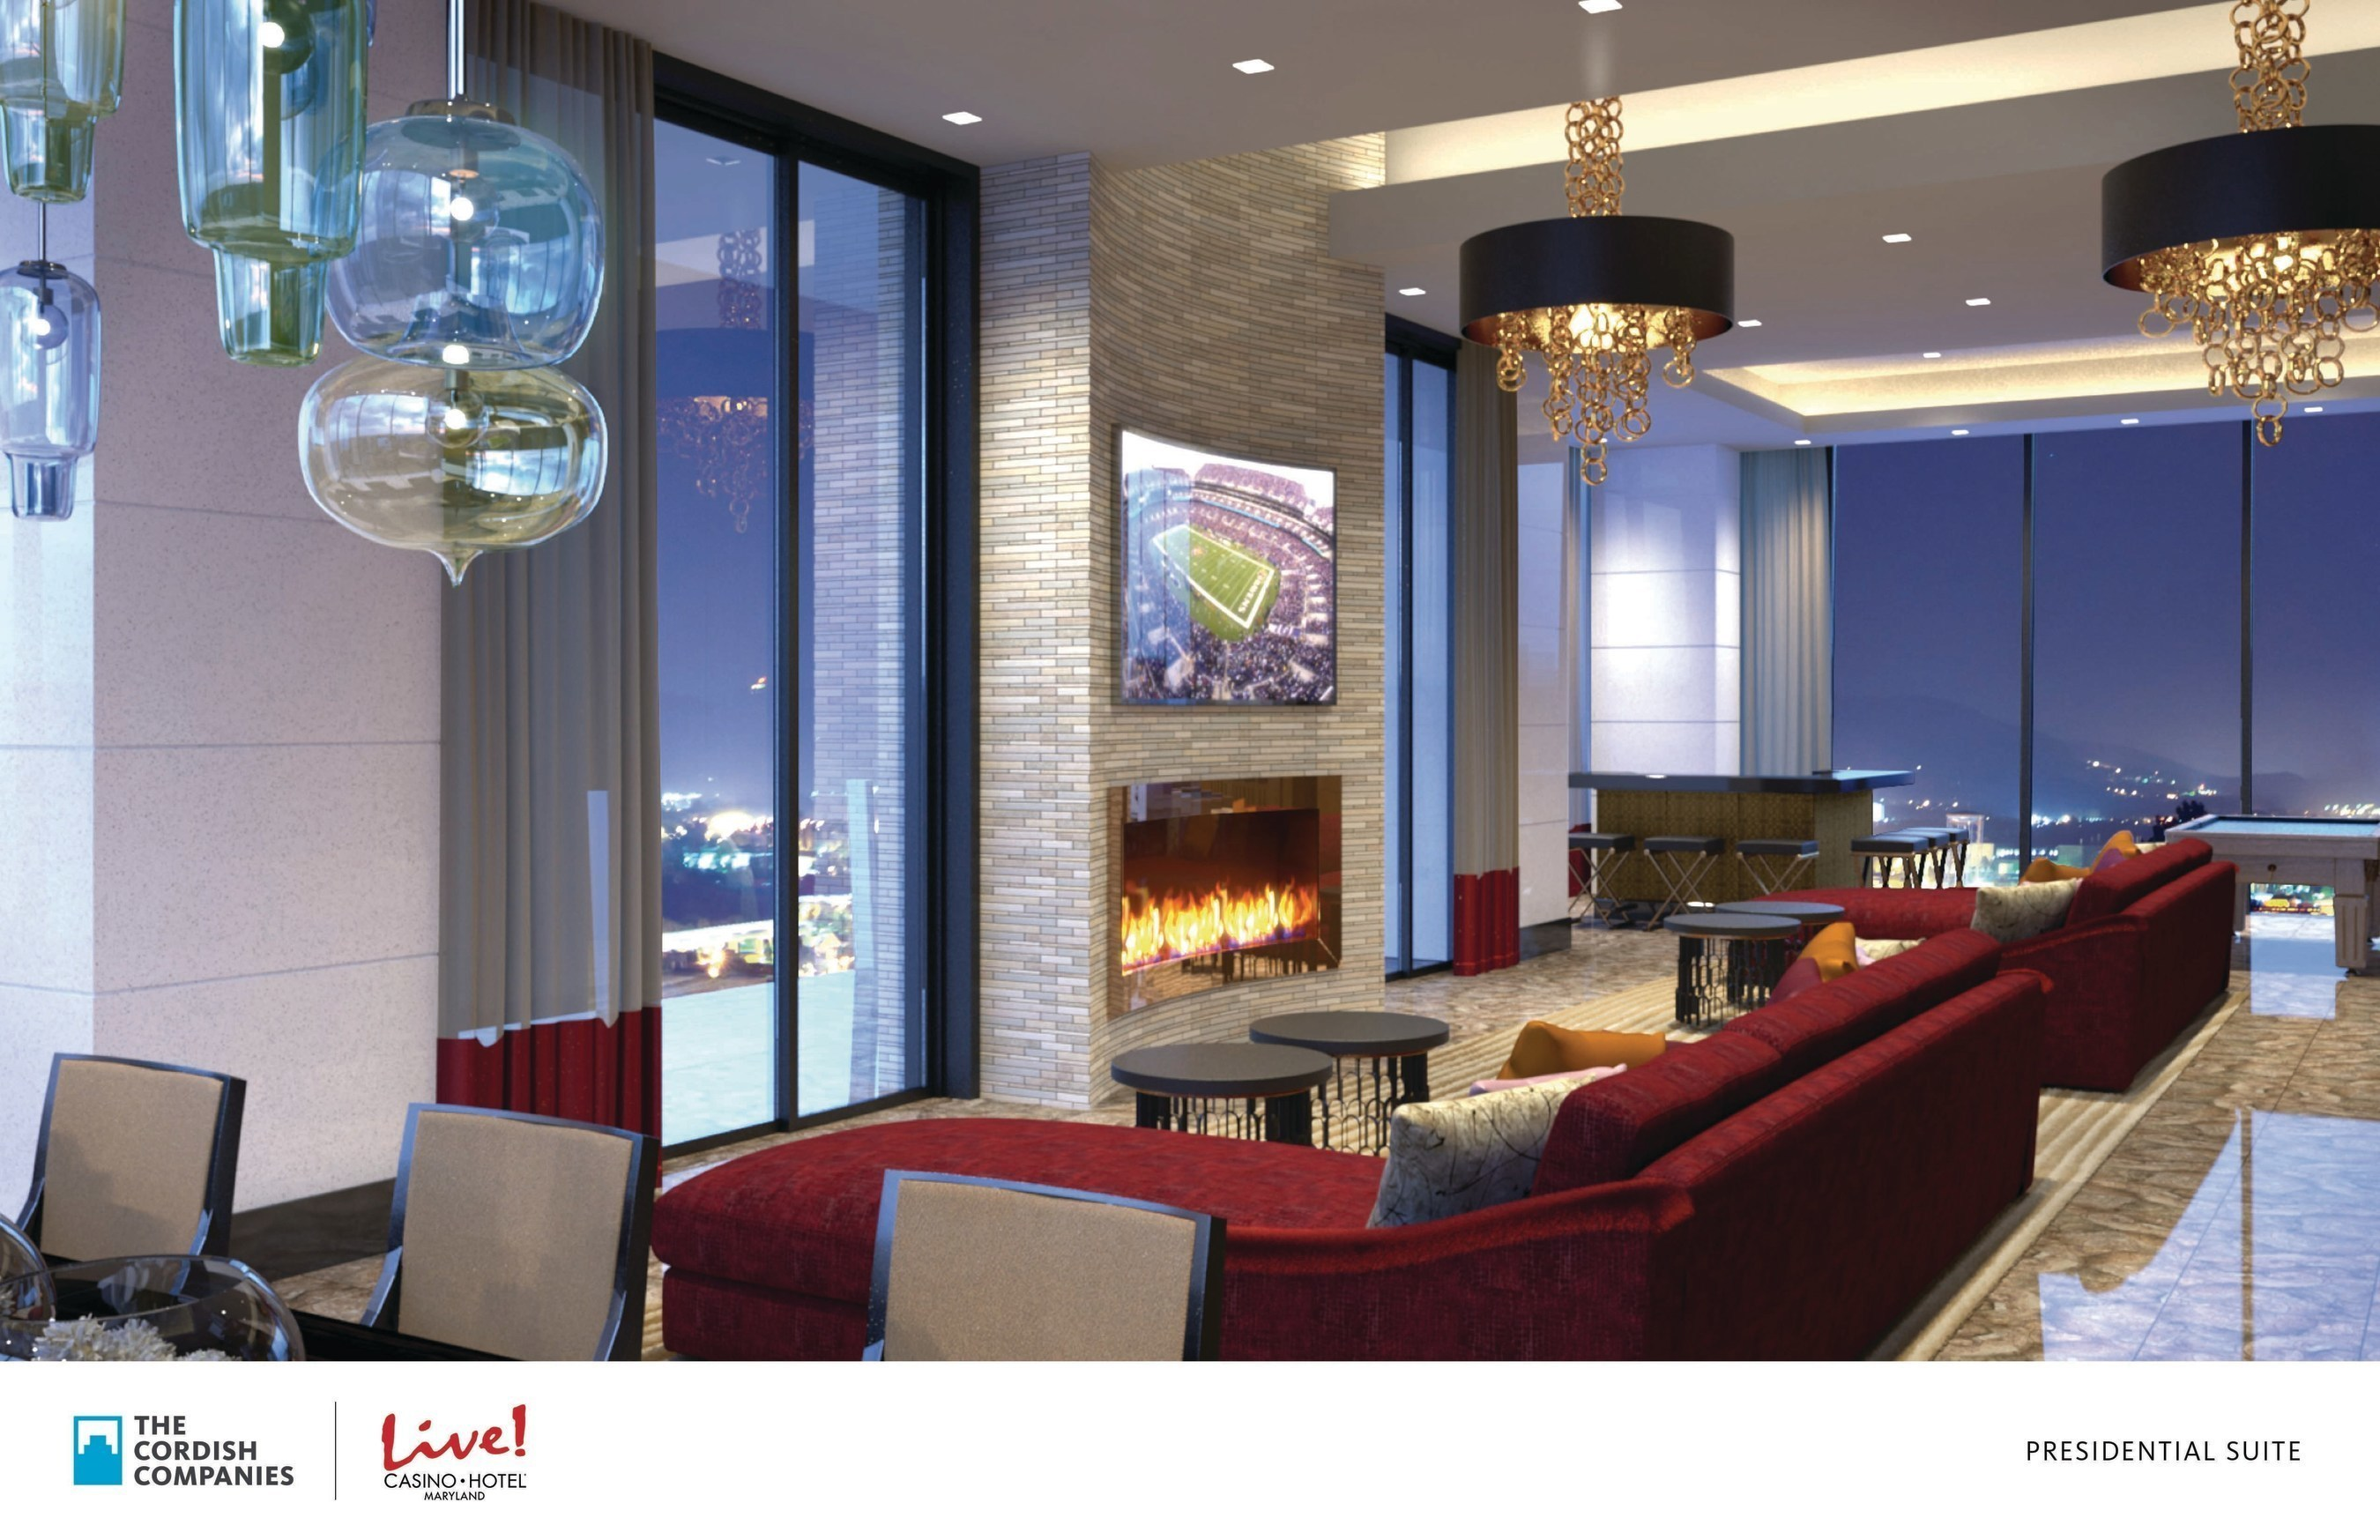 An artists' rendering depicts the Presidential Suite of the new $200 million flagship Live! Hotel. The Cordish Companies today broke ground on the development, which will be located at Maryland Live! Casino, in Hanover, MD. The 350,000- square- foot property features a 17-story hotel tower, making it the tallest building in Anne Arundel County, with 310 guest rooms, an event center, meeting spaces, new dining options, and a day spa/salon. It is the first hotel in the country to carry the Live! brand.